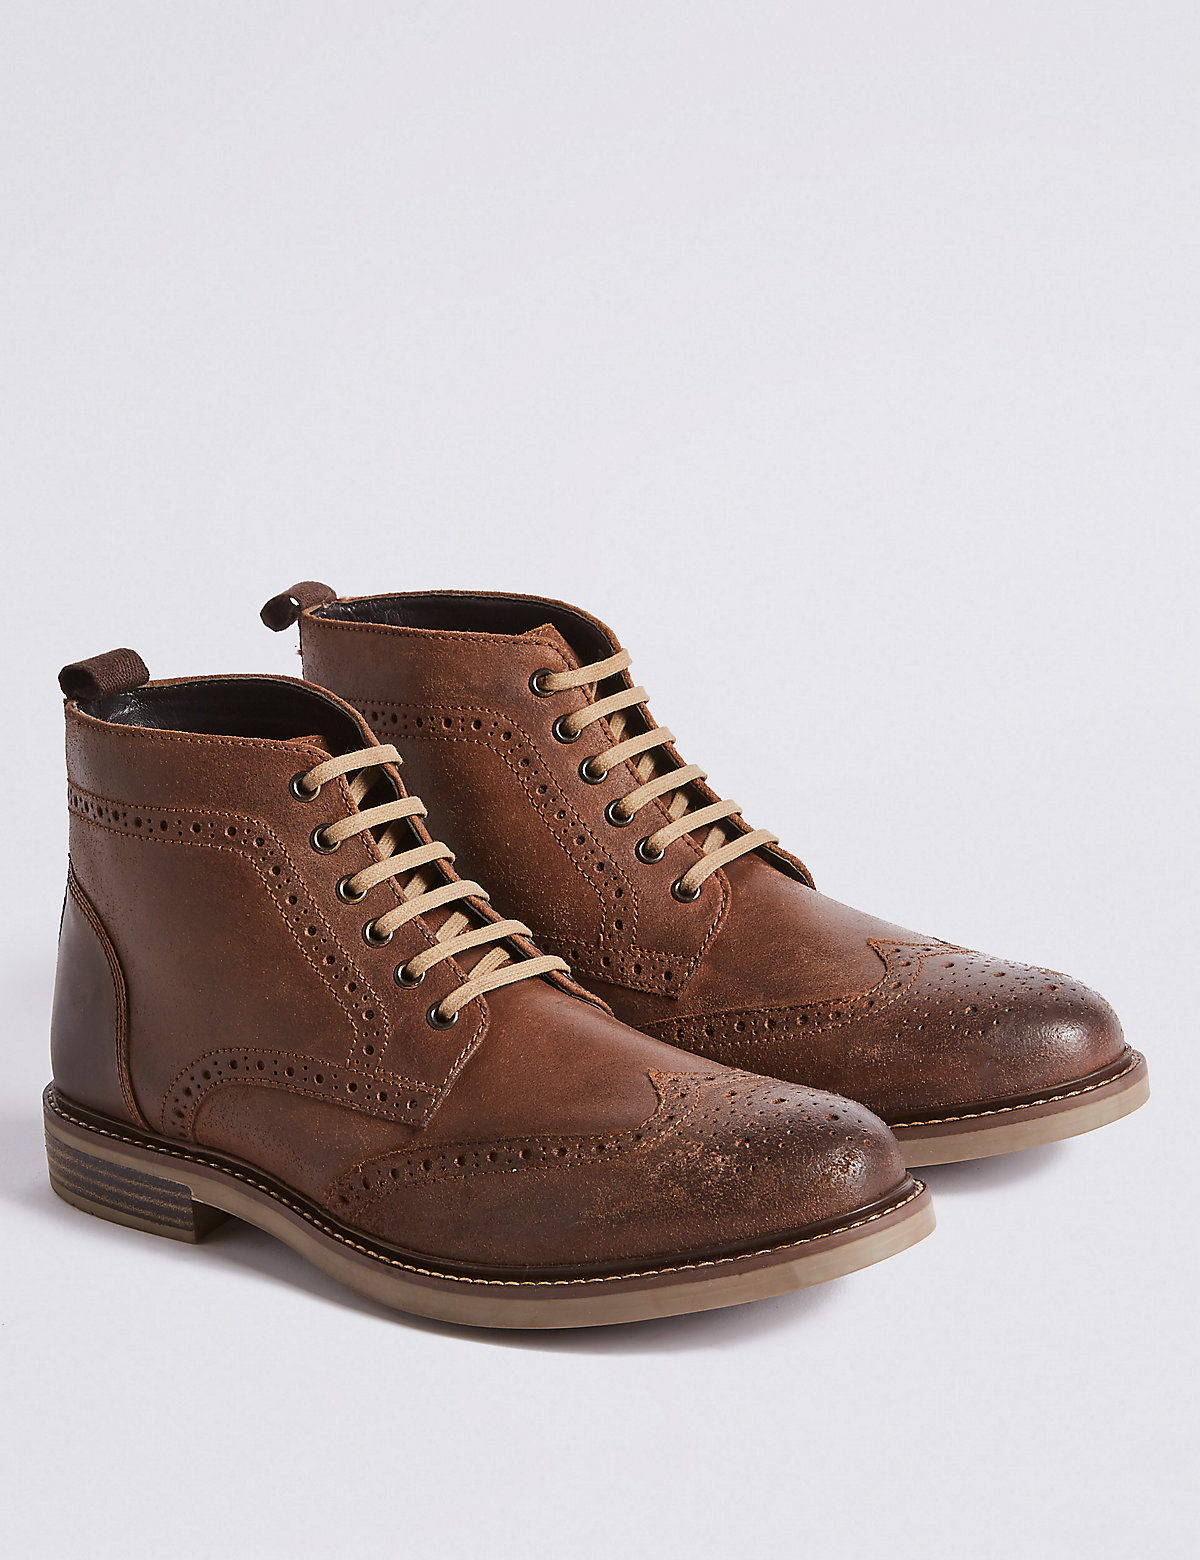 Marks & Spencer Tan Leather Lace-up Chukka Boots